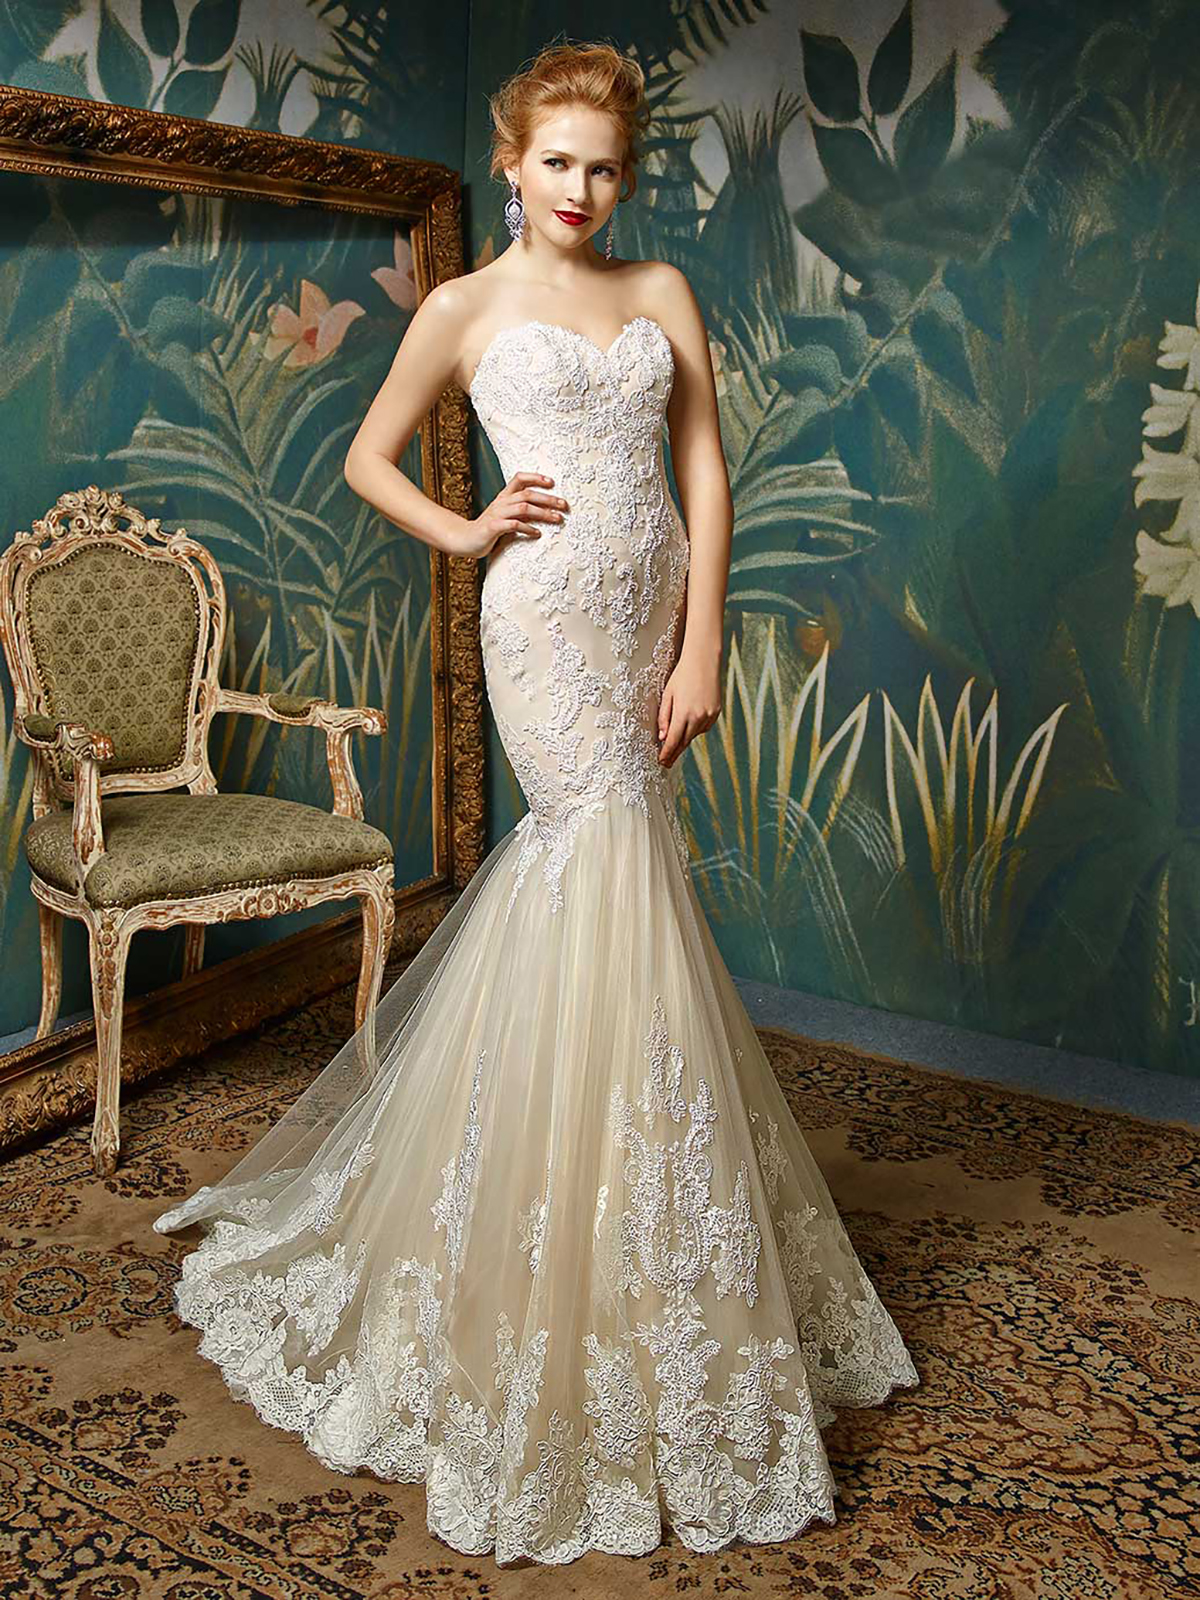 Win Your Wedding Dress Worth GBP1300 With Lulu Browns Bridal Fashion Supplier Spotlight